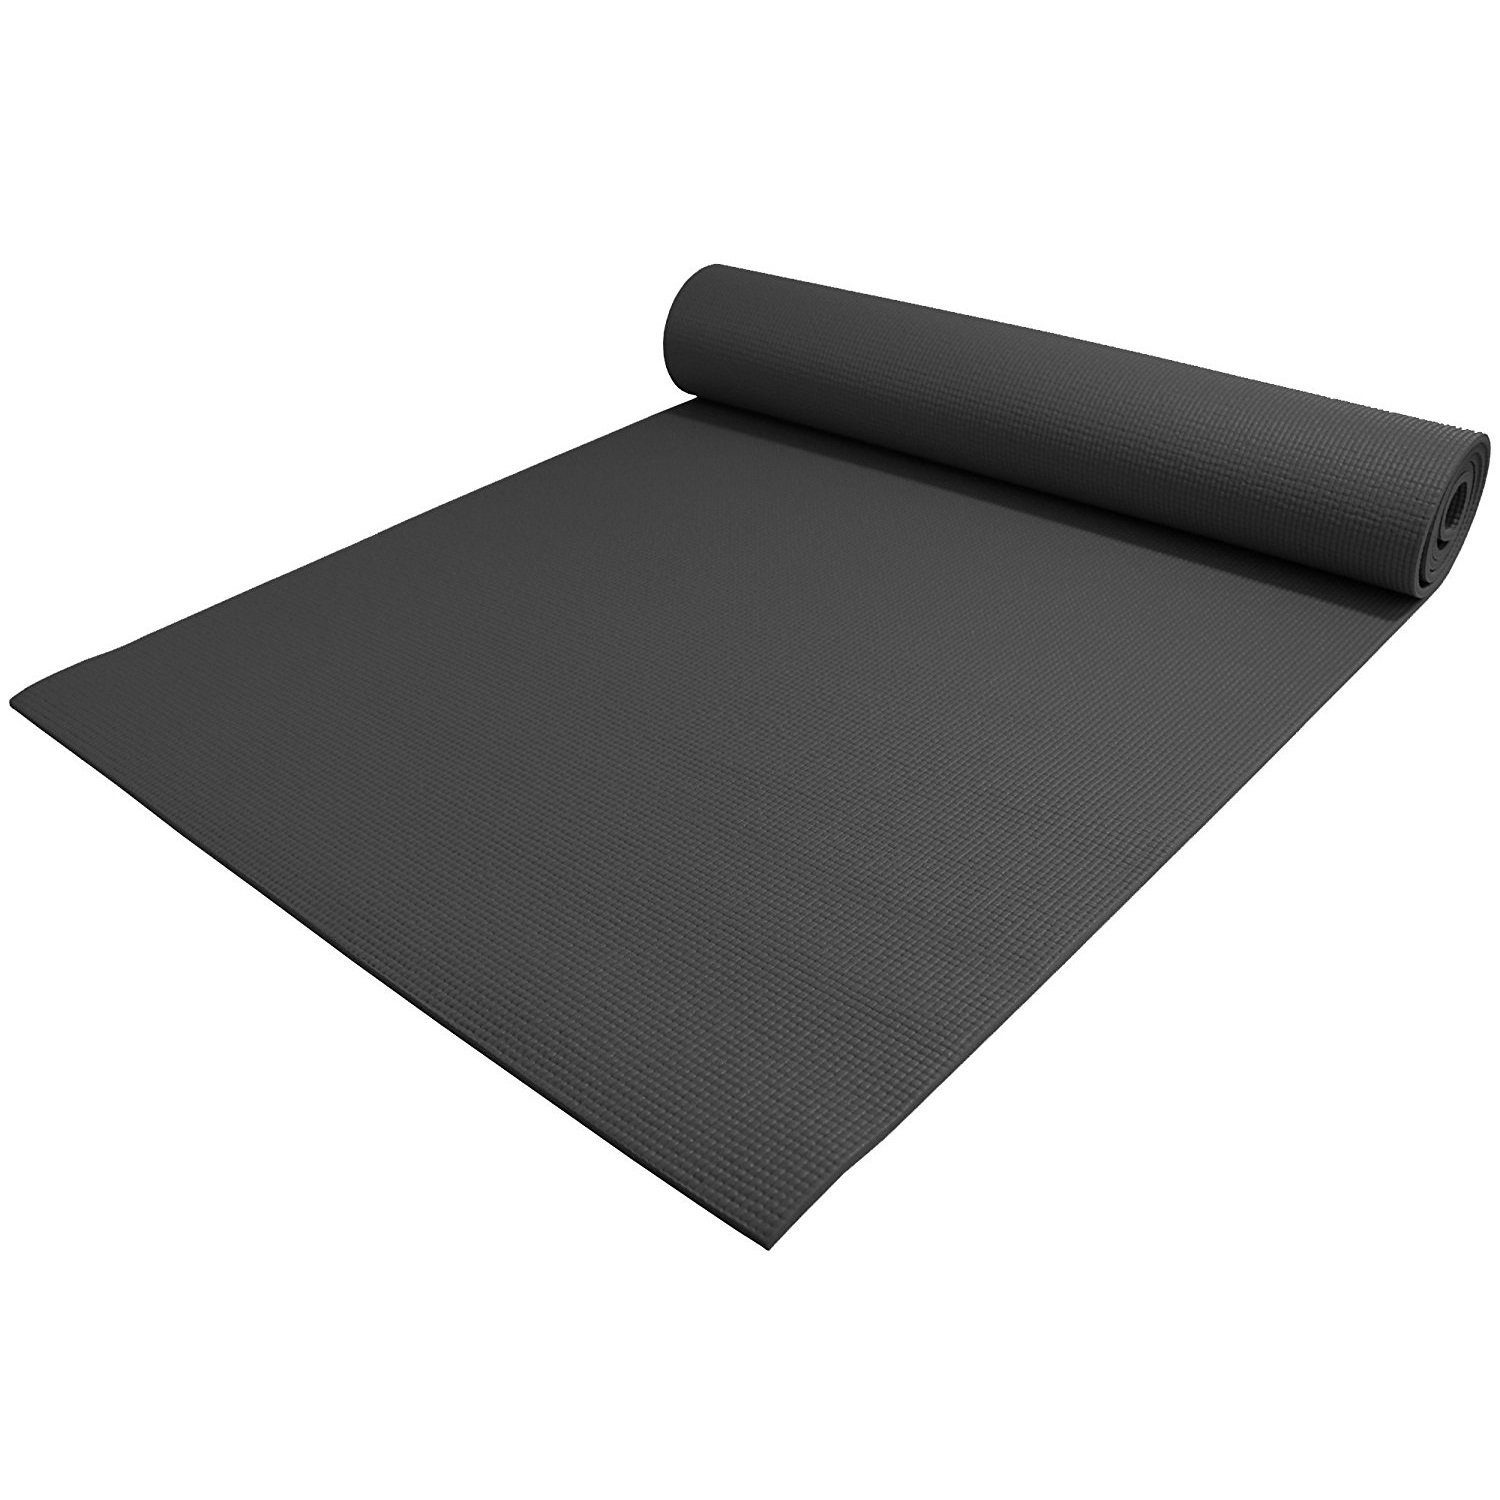 mens thick pilates non tpe men friendly for eco textured slip blue women and yoga products mats carry mat with strap cm x